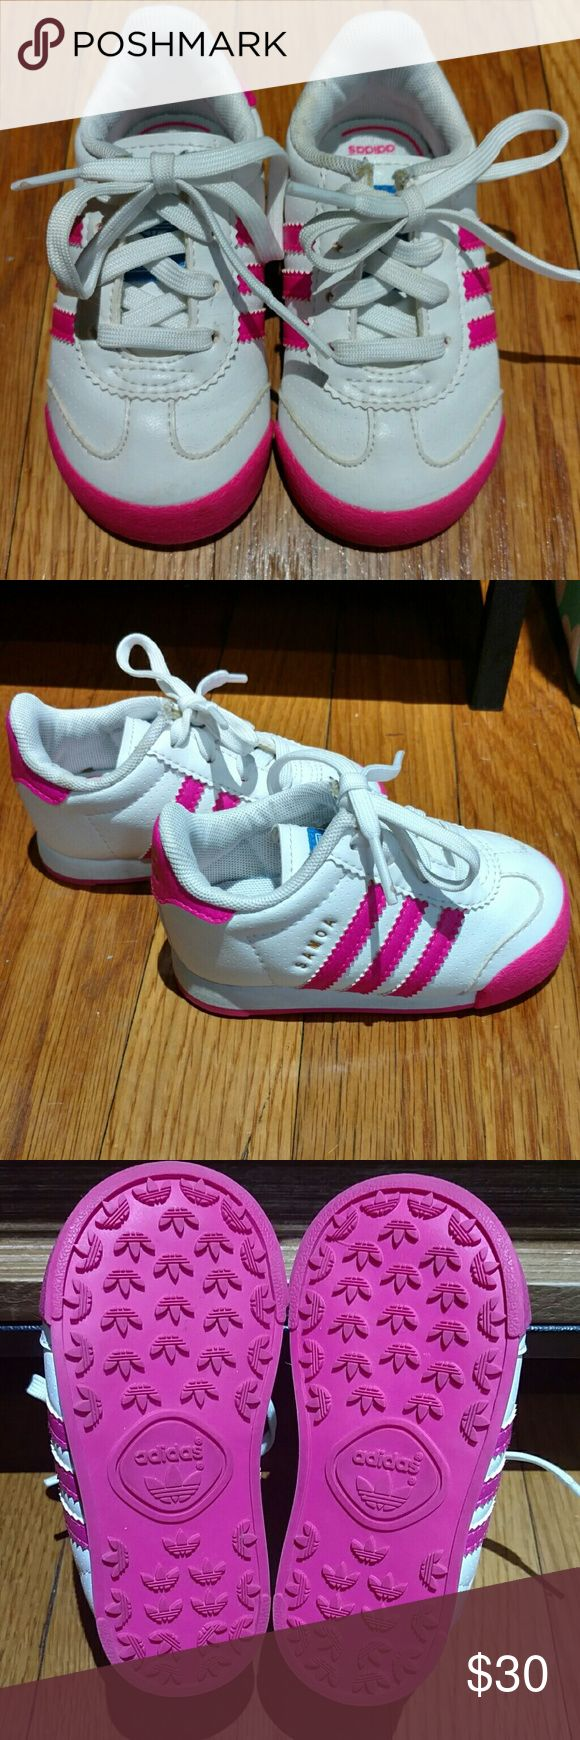 Adidas Samoa Toddler Girls Toddler girls white/pink Samoa sneaker. Worn probably 2 times. Practically like new. Adidas Shoes Sneakers